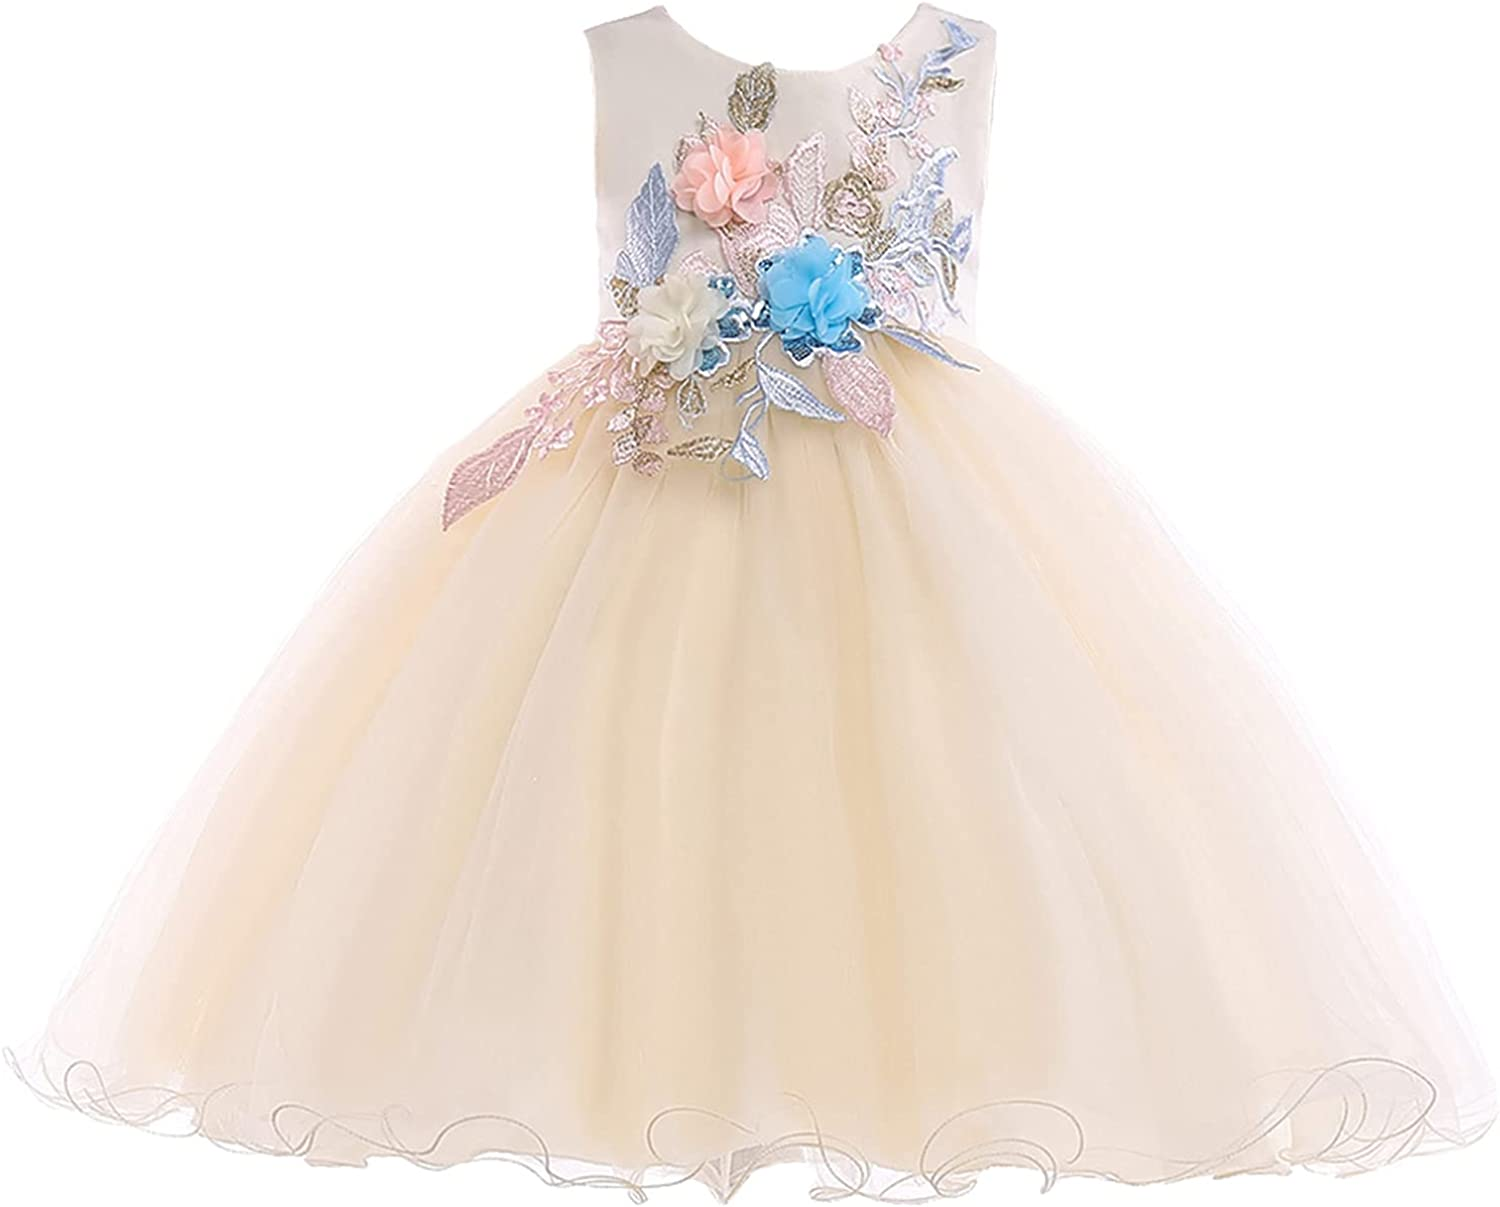 YiZYiF Kids Girls Flower Applique Dress Birthday Wedding Party Princess Prom Dresses for Special Occasion